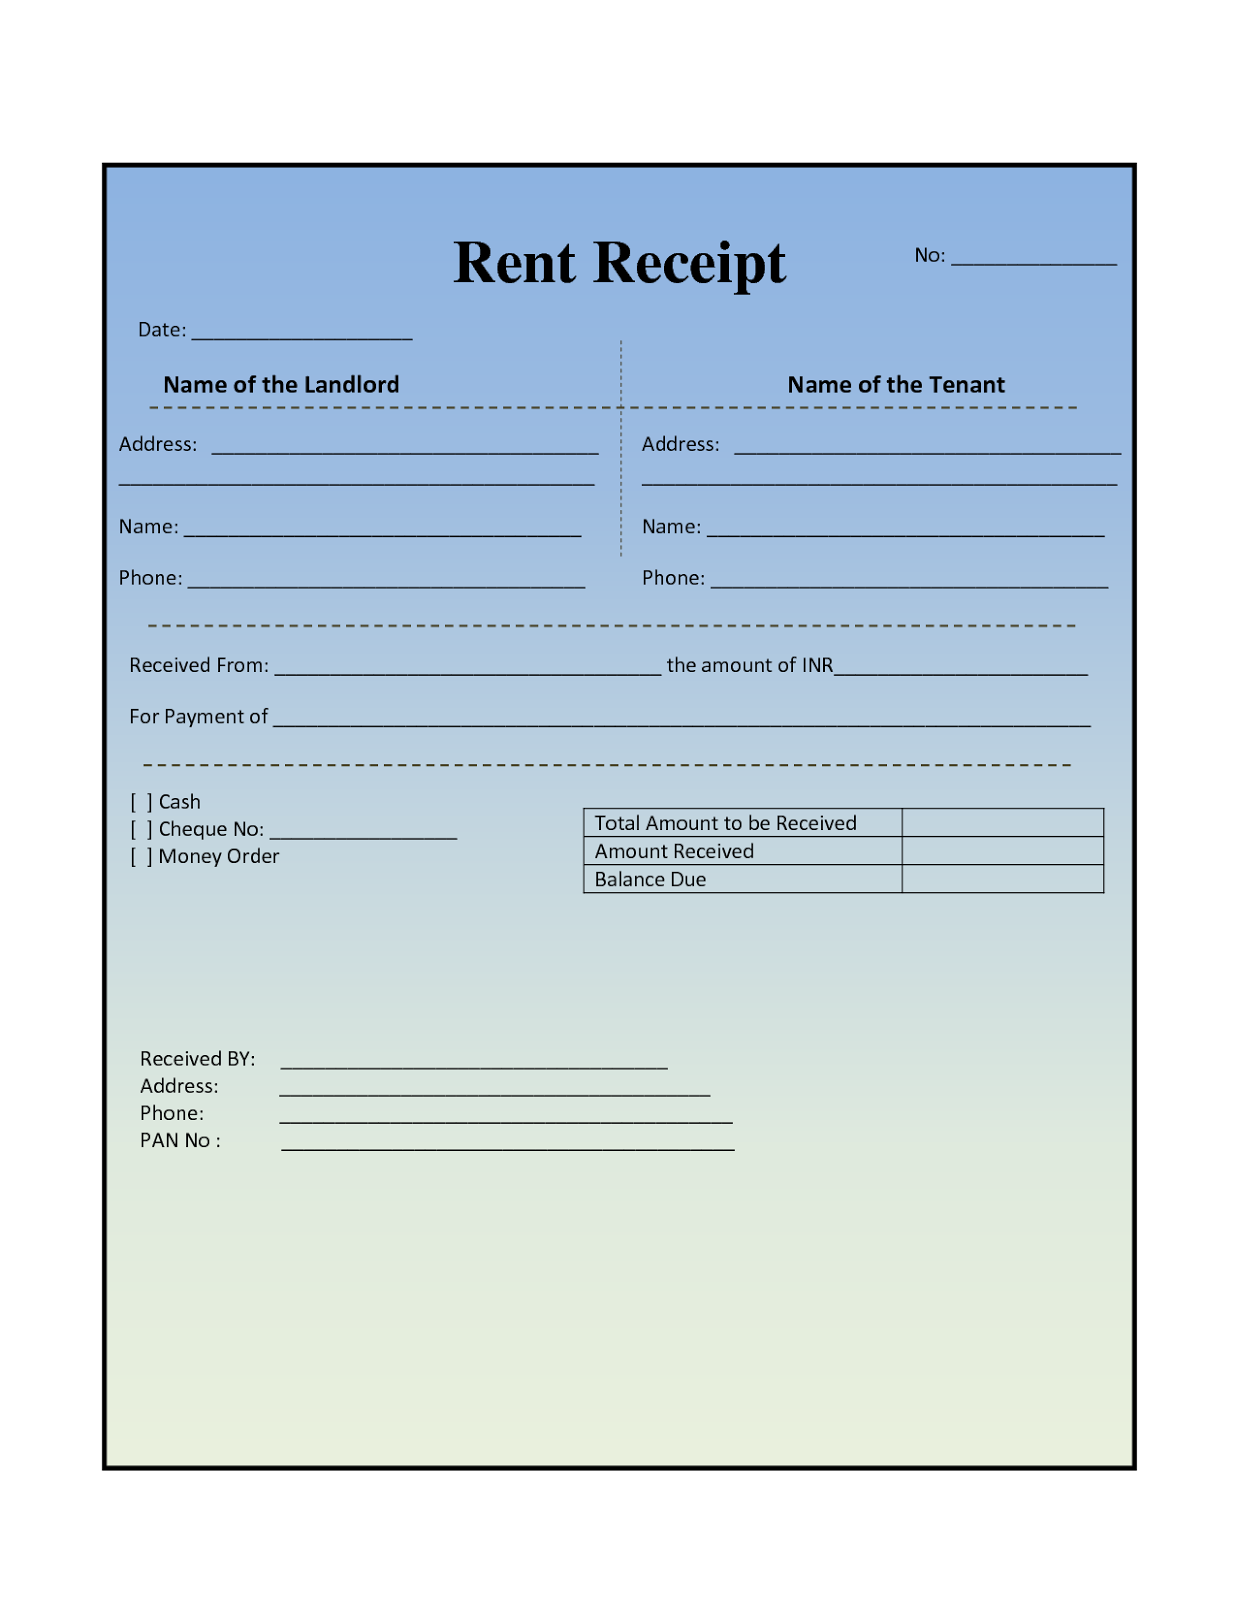 House Rental Invoice Template in Excel Format